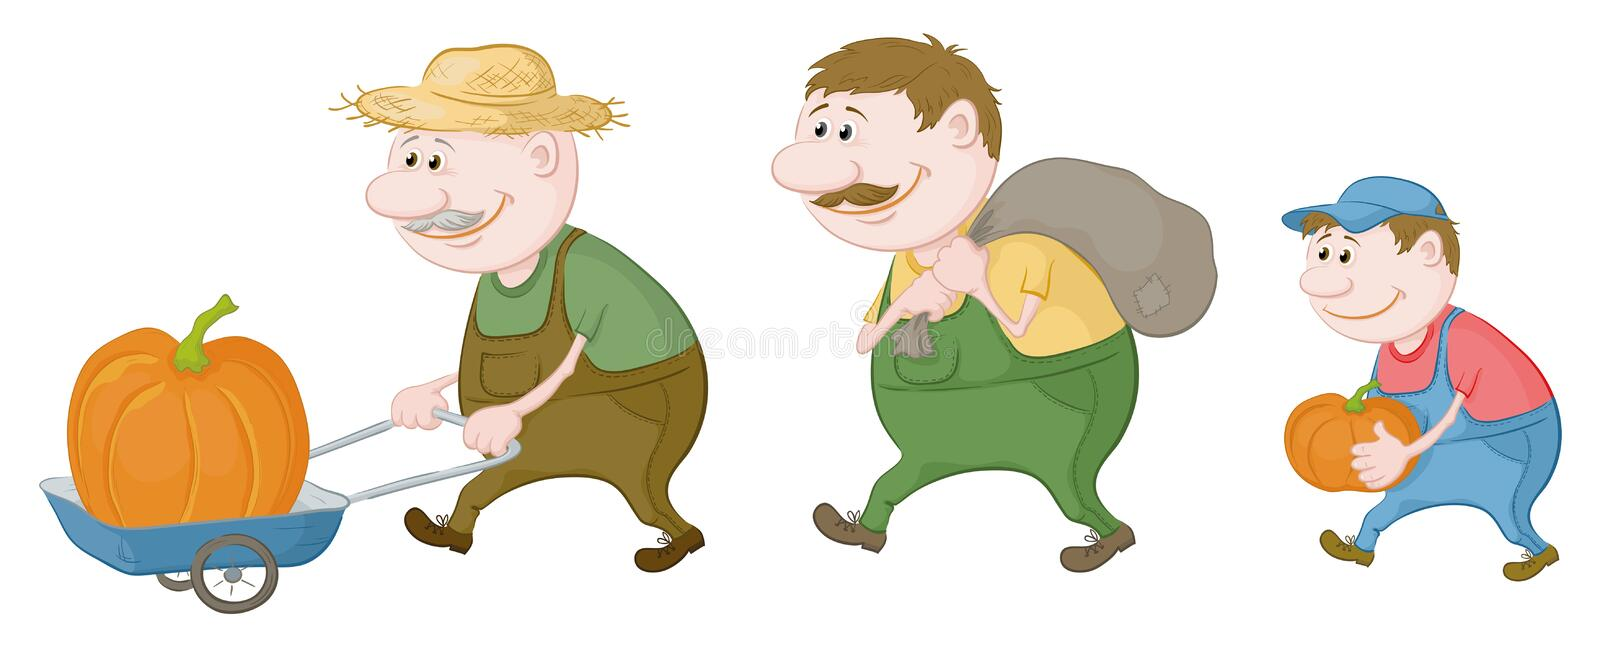 Farmers with the harvest of pumpkins royalty free illustration